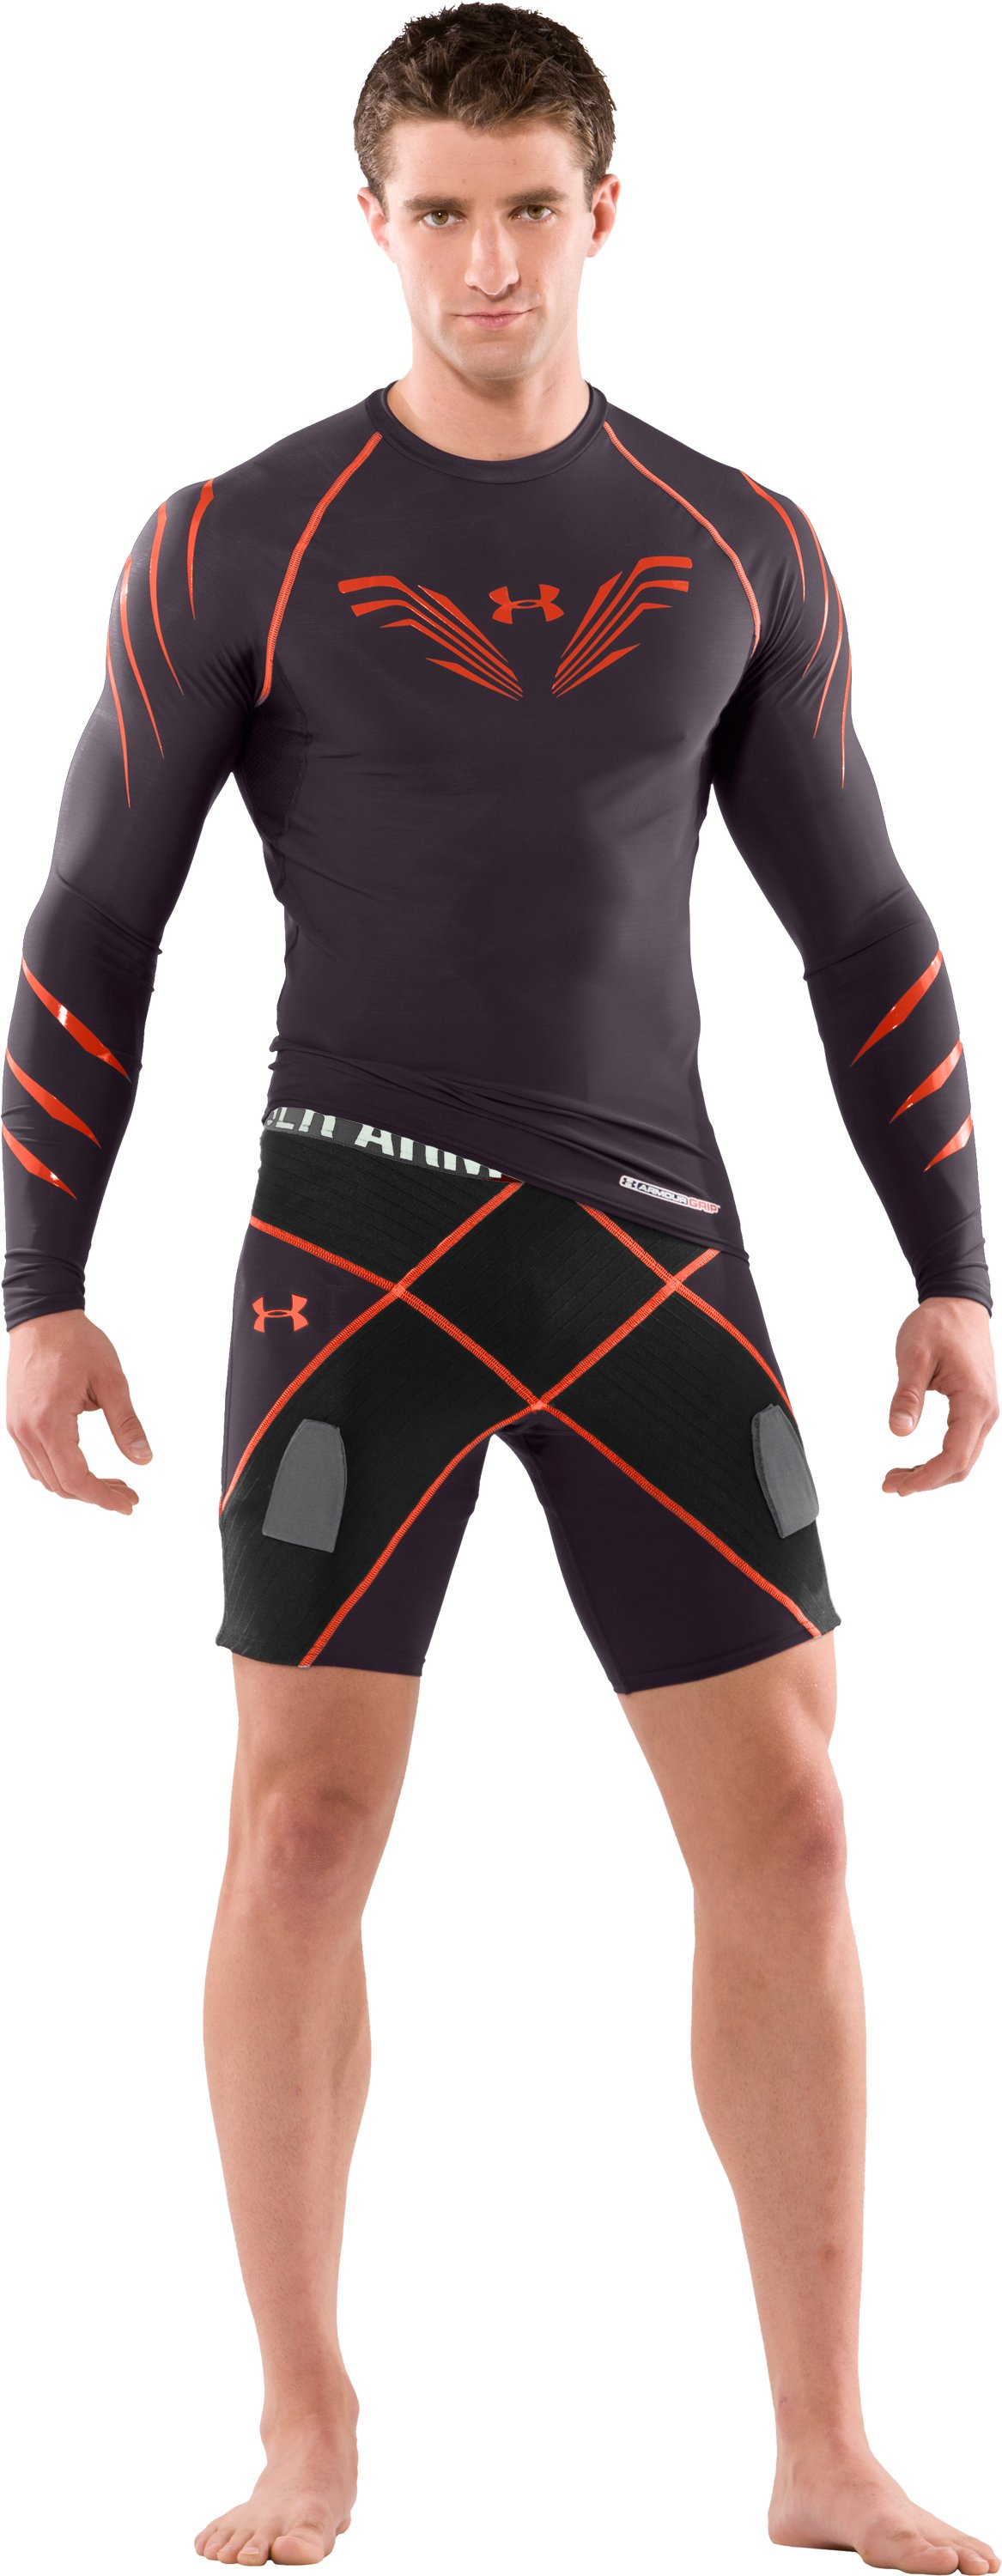 Men's Hockey Pro Coreshorts, Charcoal